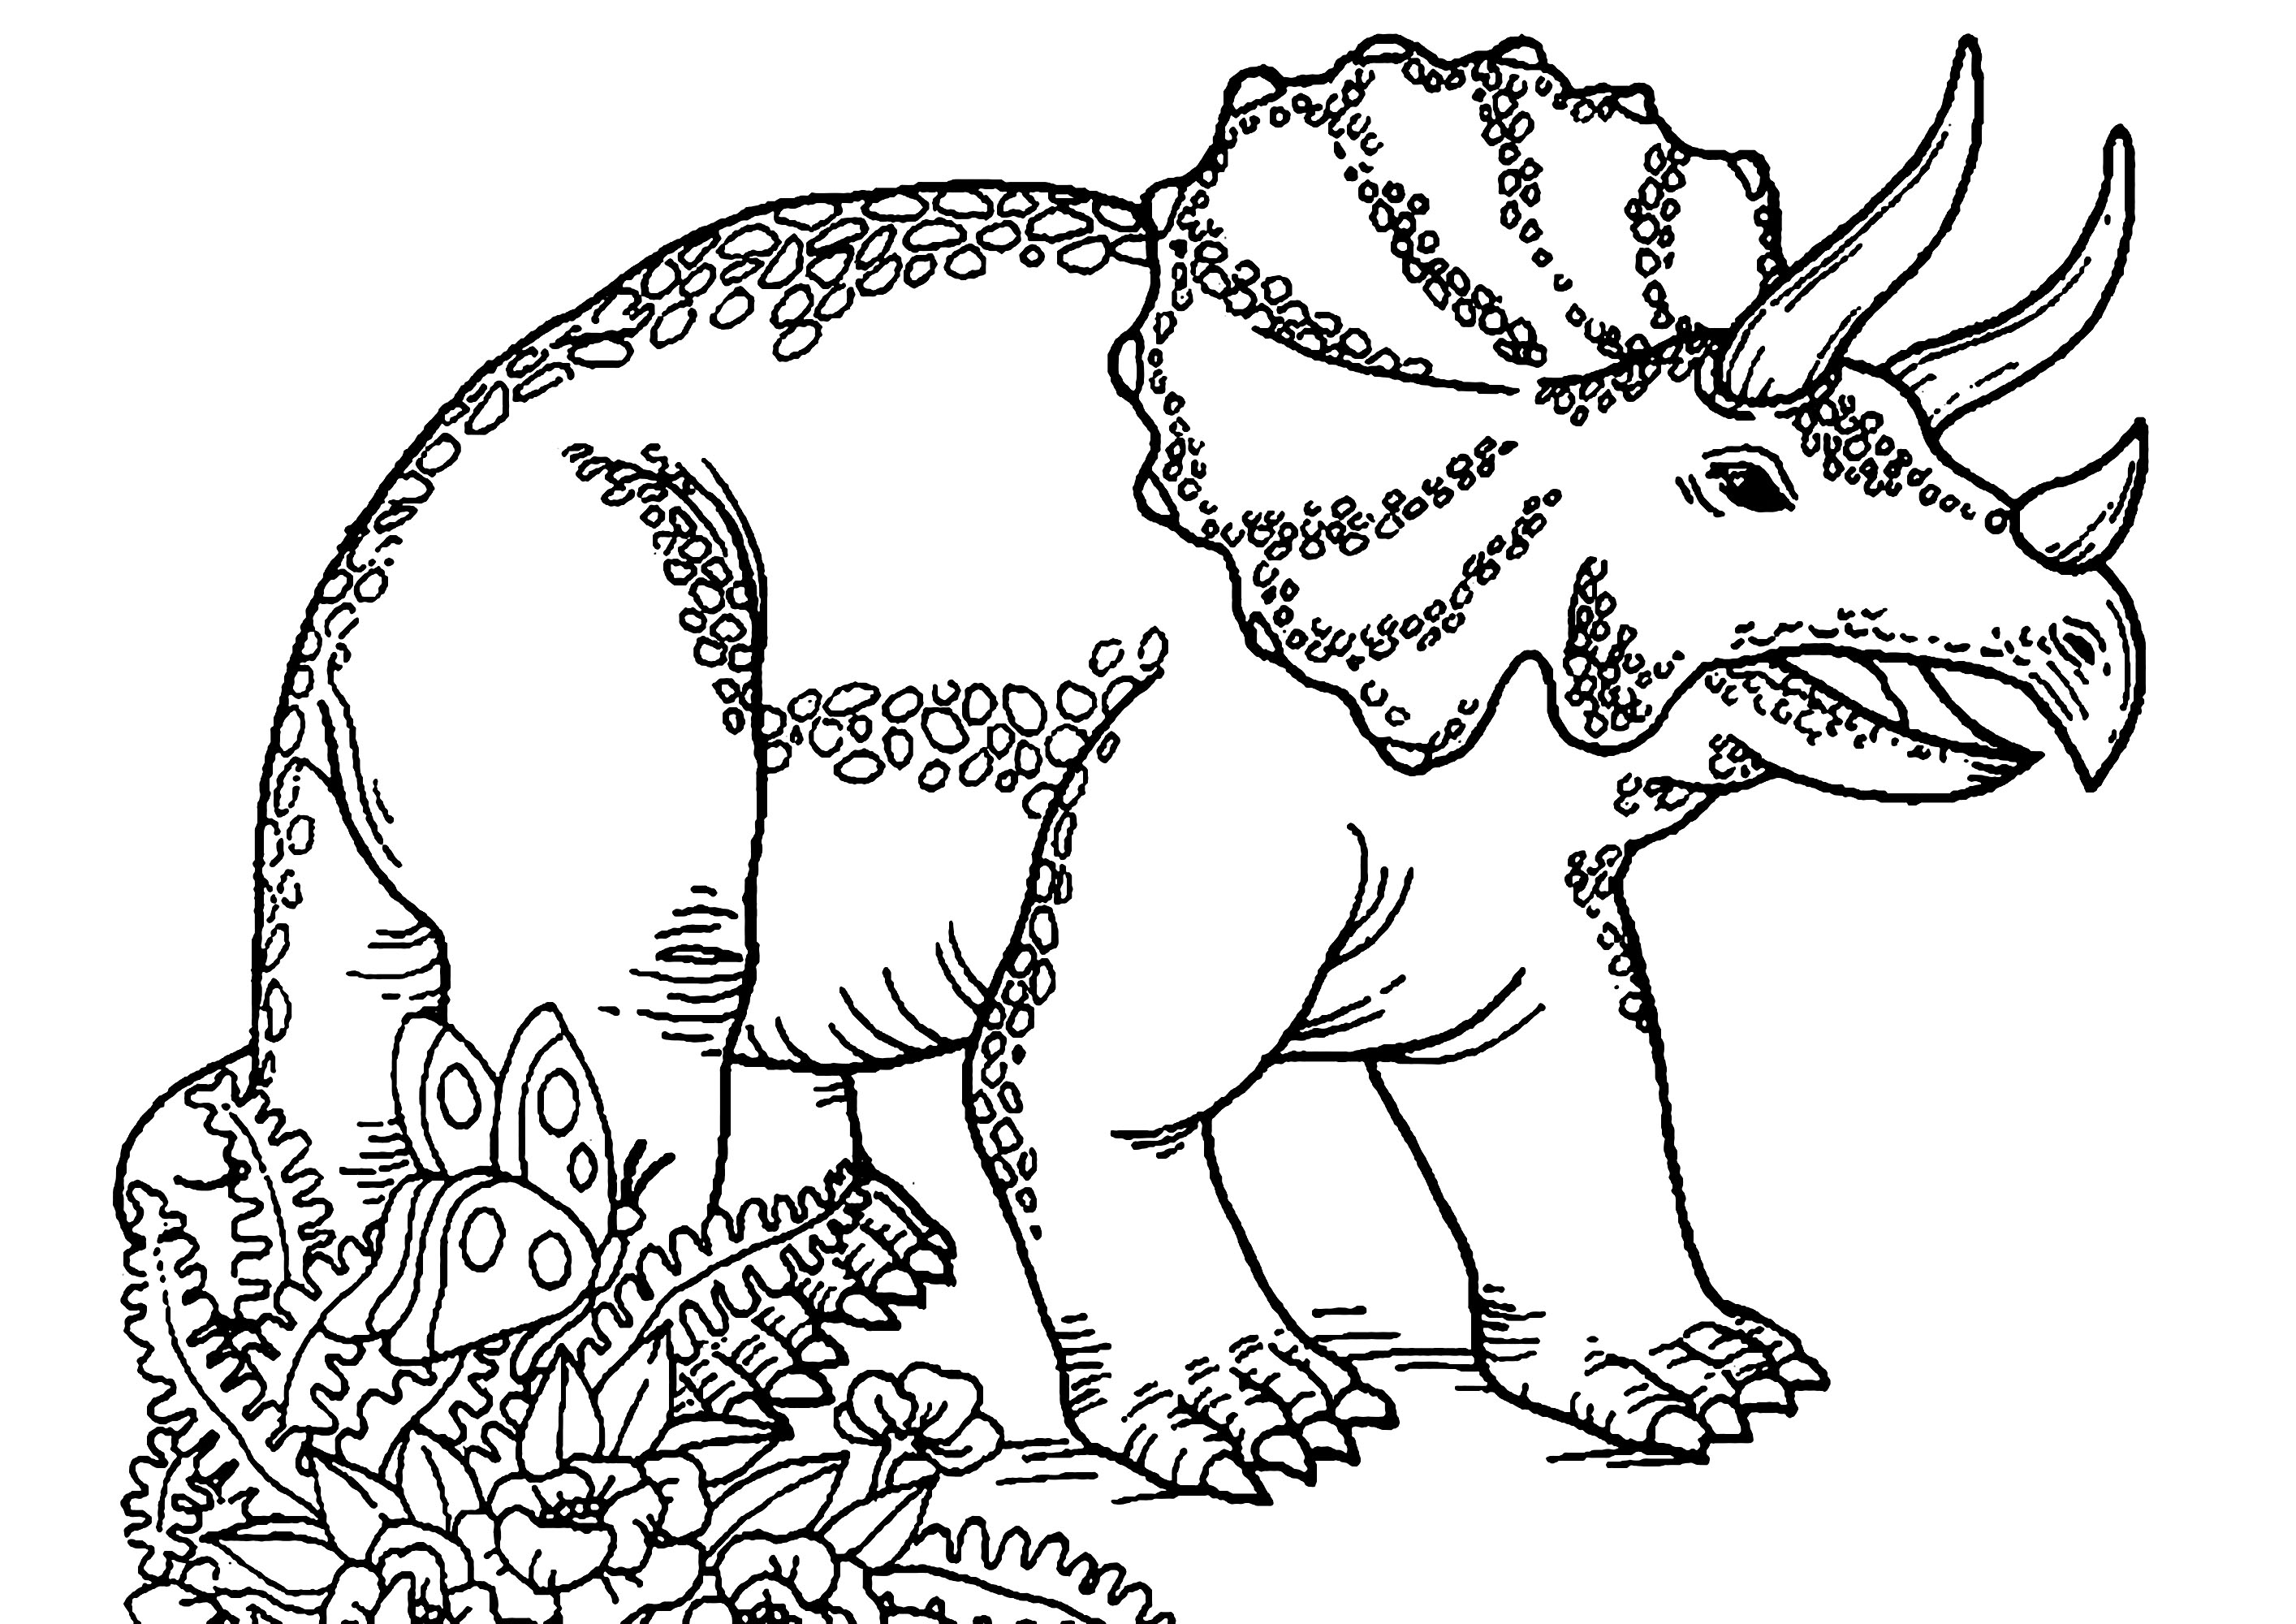 dinosaur coloring pages printable free dinosaur train coloring pages printable coloring dinosaur pages free